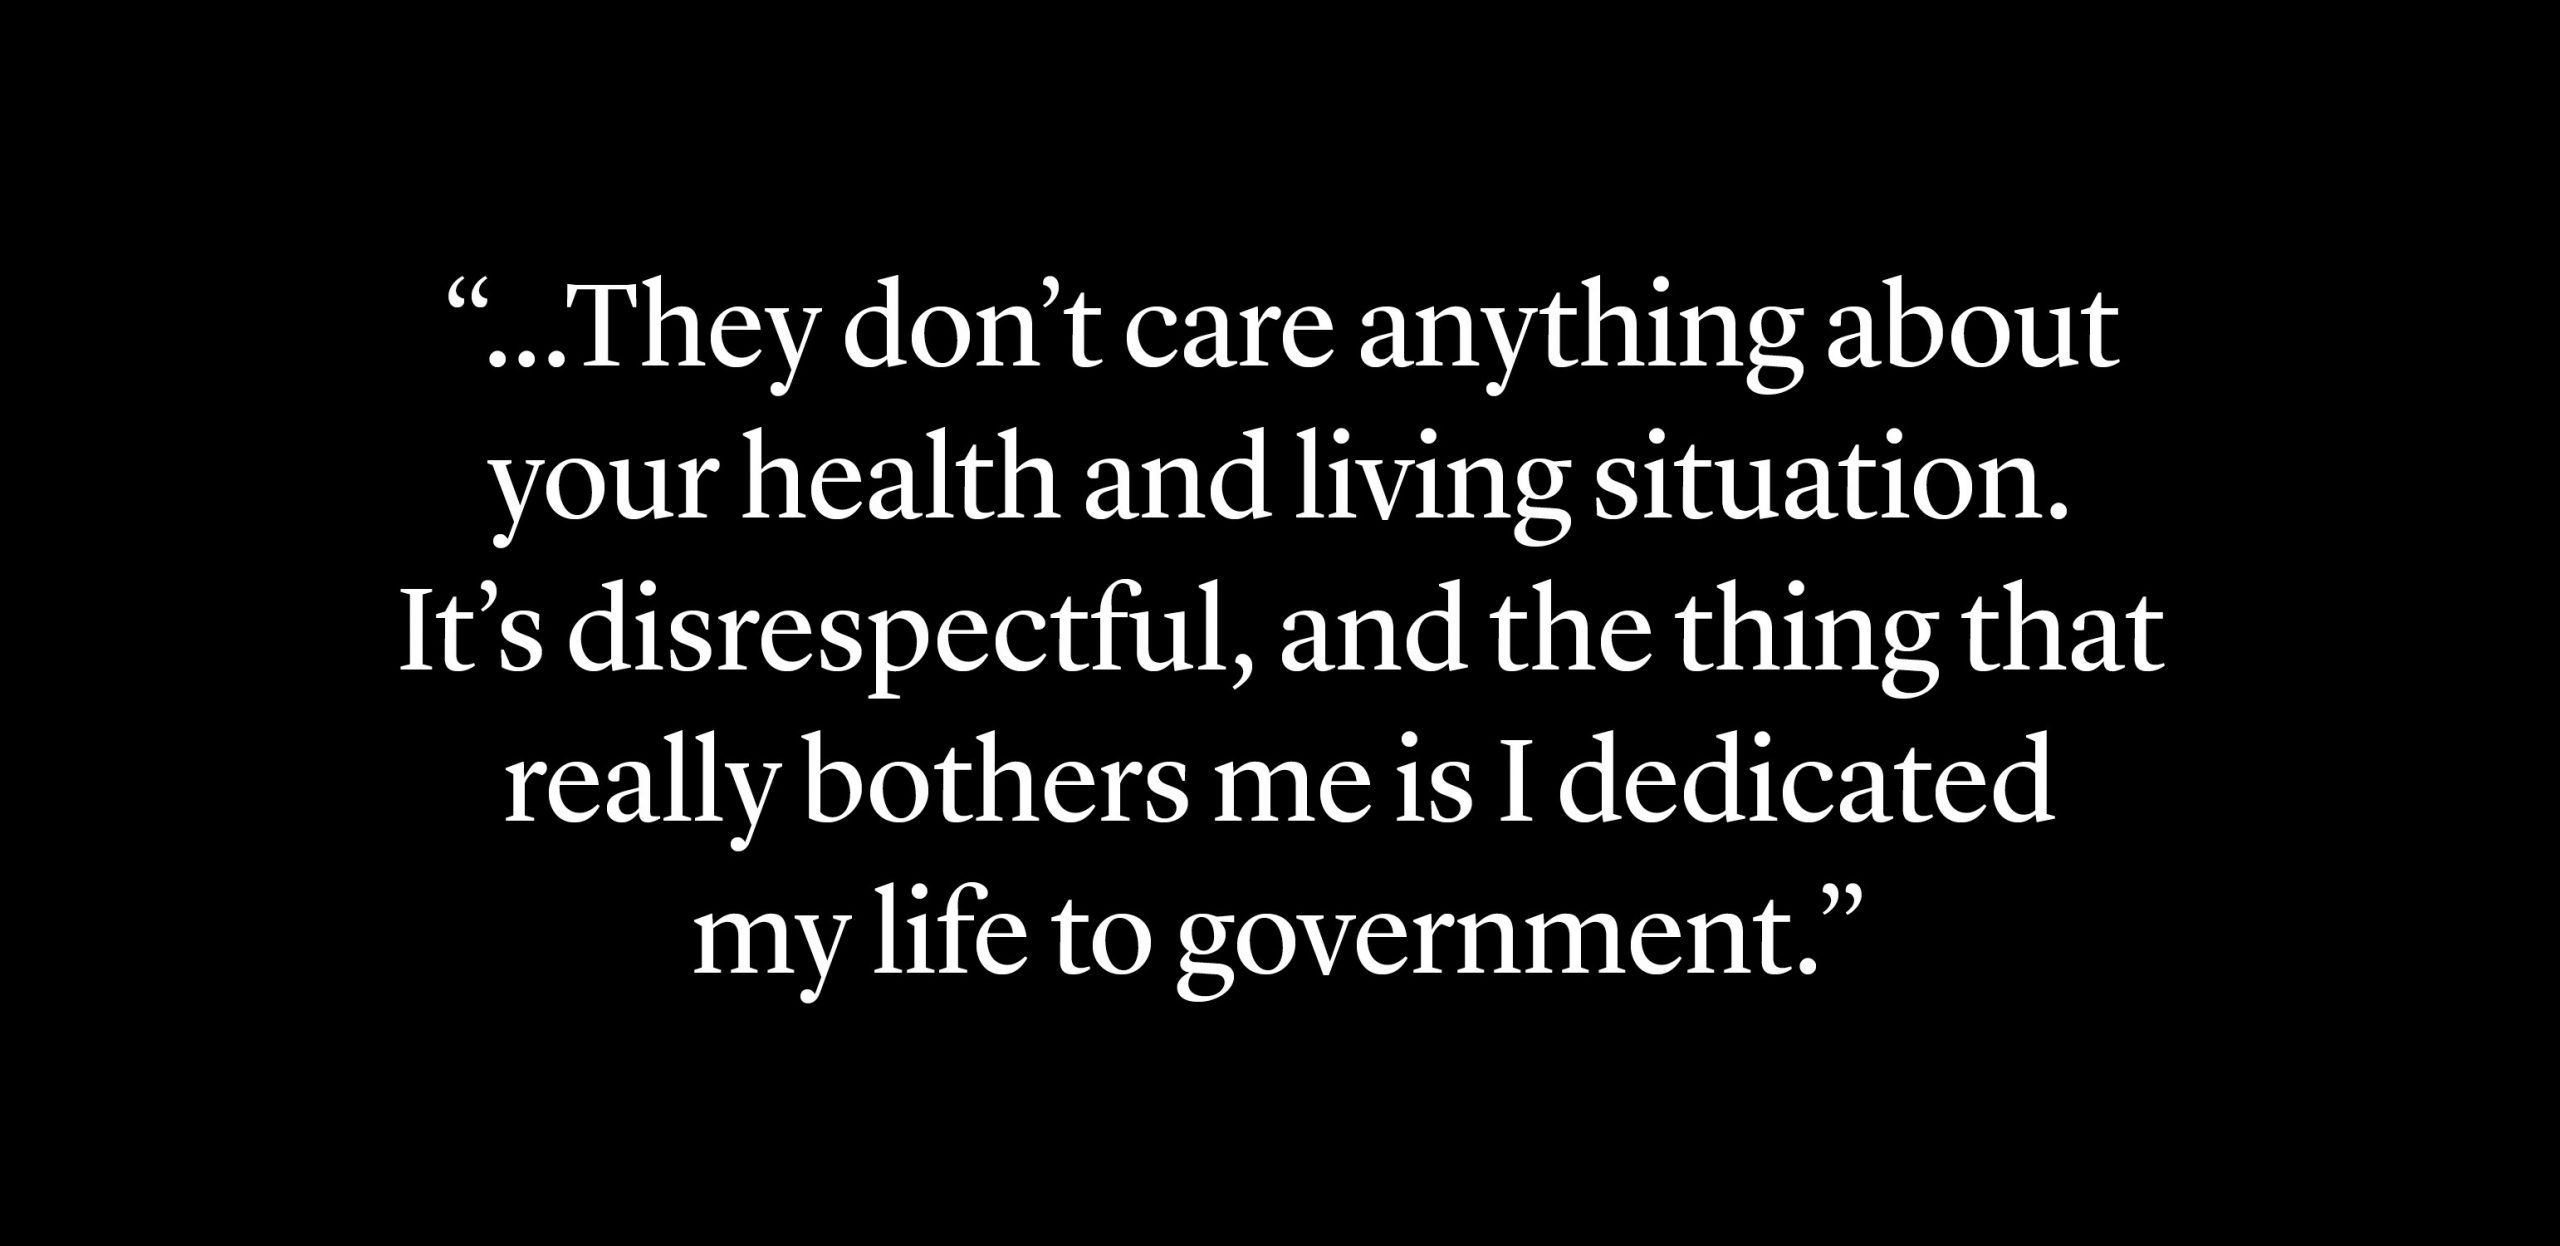 """They don't care anything about your health and living situation. It's really disrespectful, and the thing that really bothers me is I dedicated my life to government."""